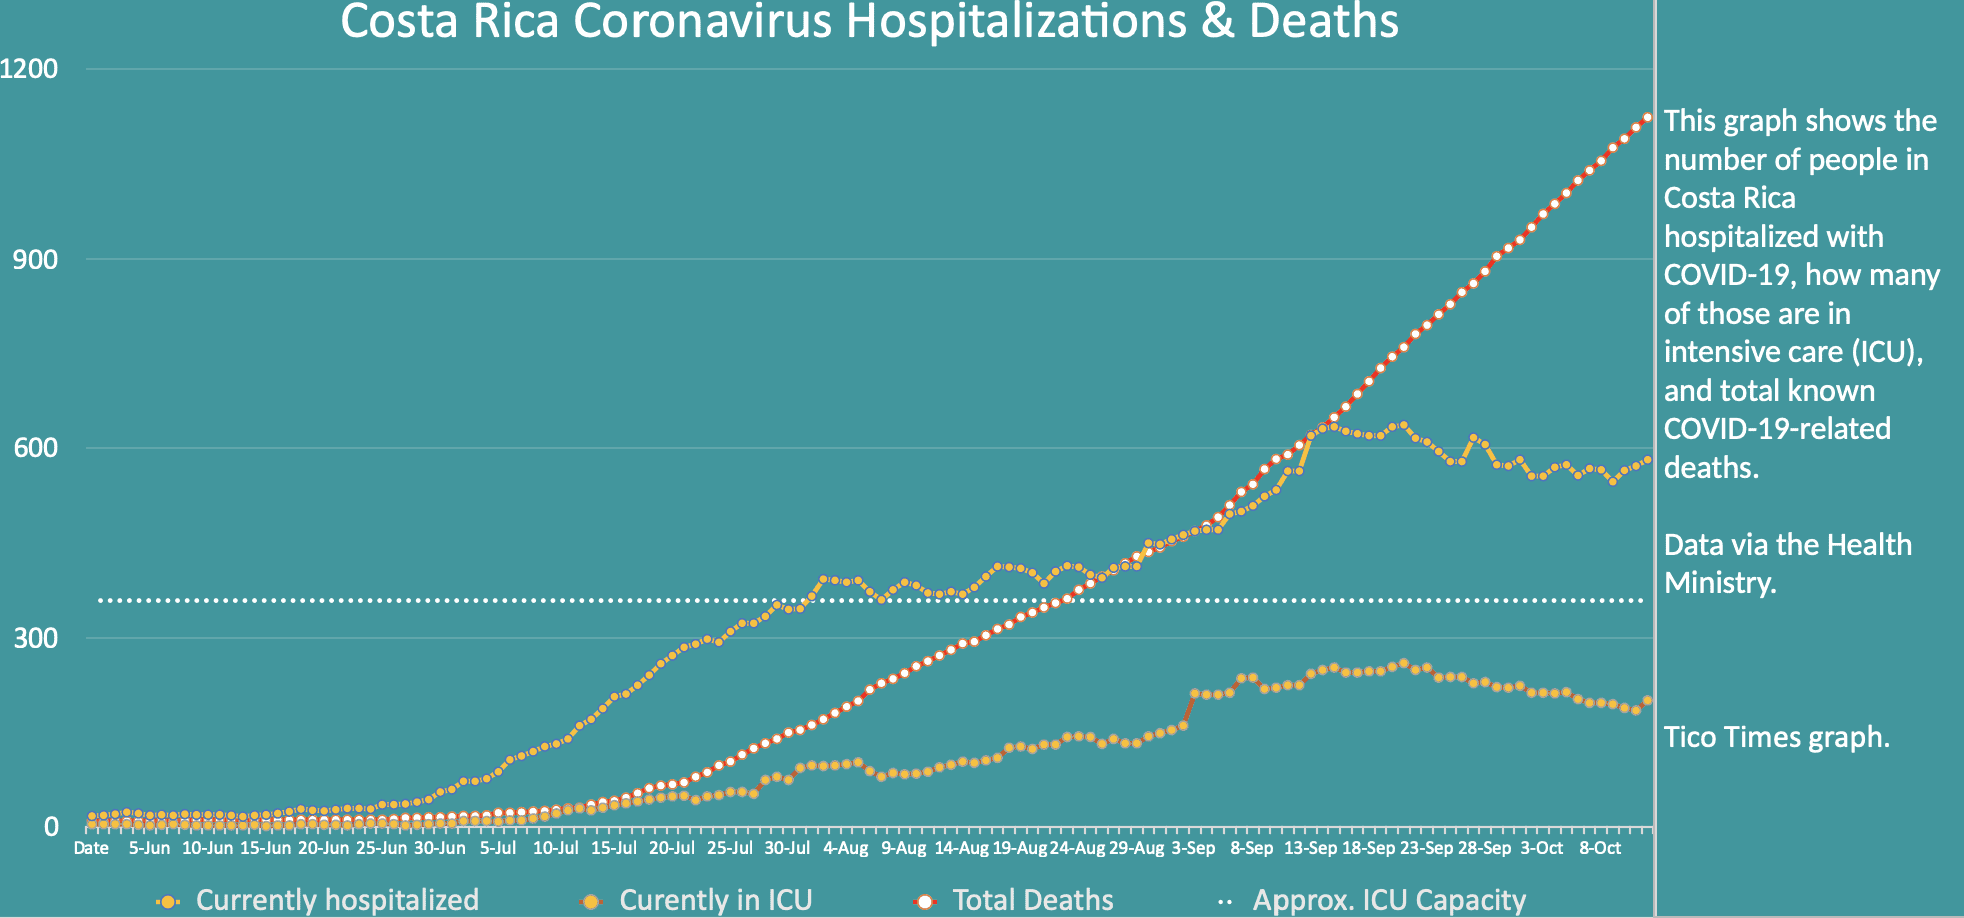 Costa Rica coronavirus hospitalizations and deaths on October 13, 2020